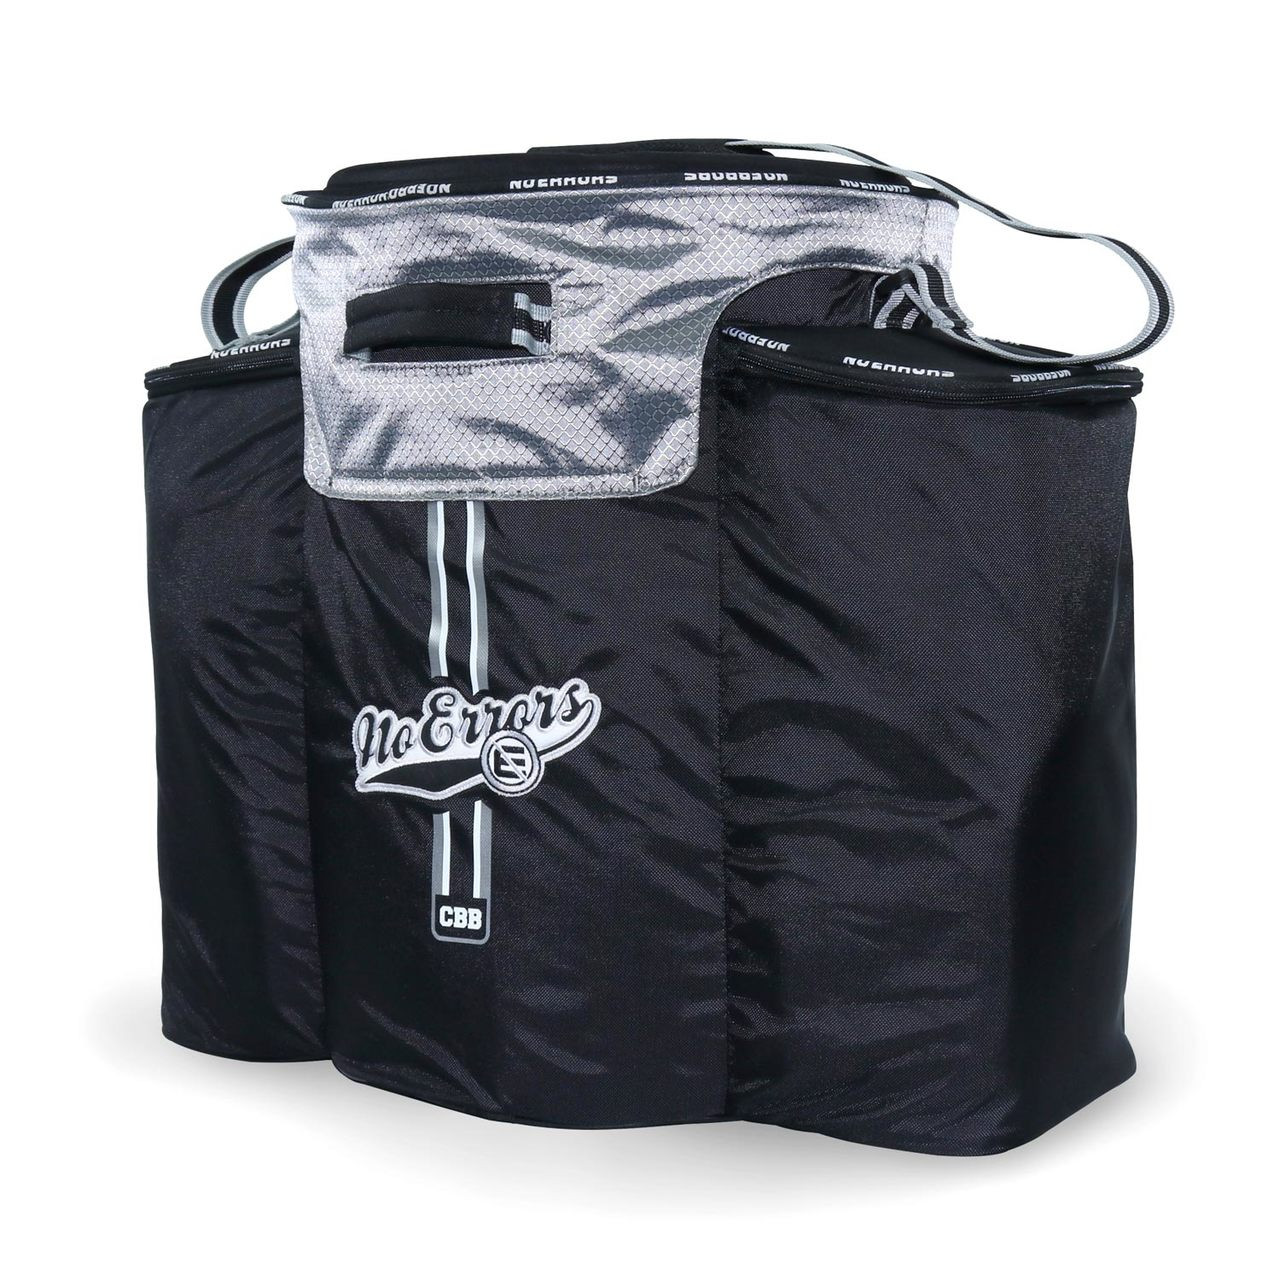 The Coaches Ball Buddy All-In-One Coaches Bag